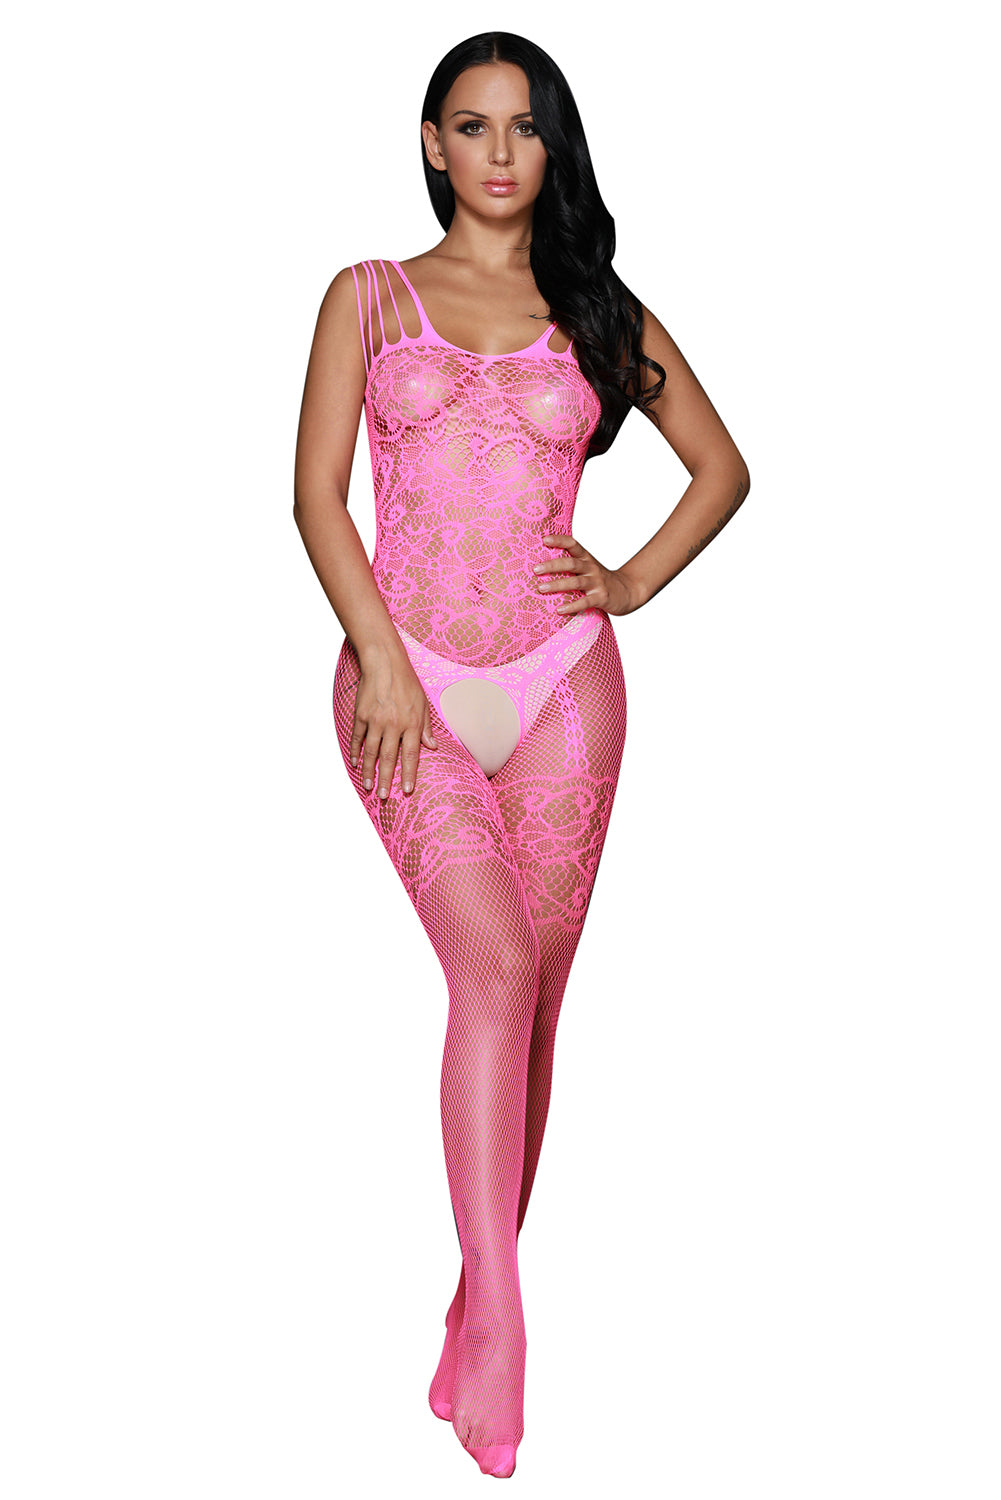 Rosy Strappy Shoulders Floral Motif Mesh Body Stockings